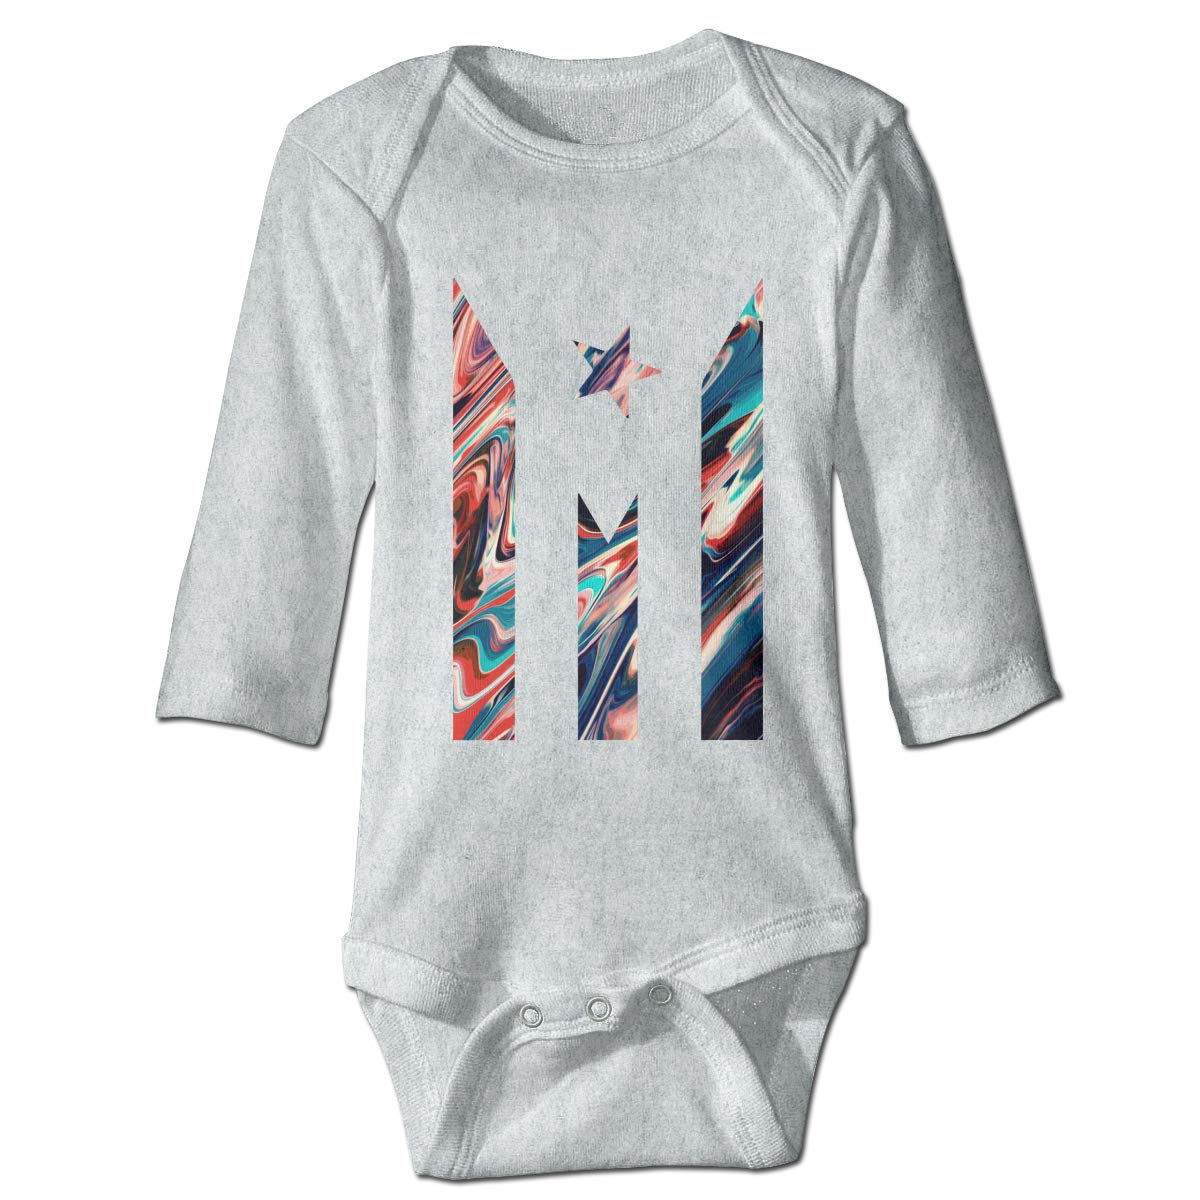 Baby Infant Toddler Long Sleeve Romper Bodysuit Puerto Rico Resiste Boricua Flag Paint Flow Background Playsuit